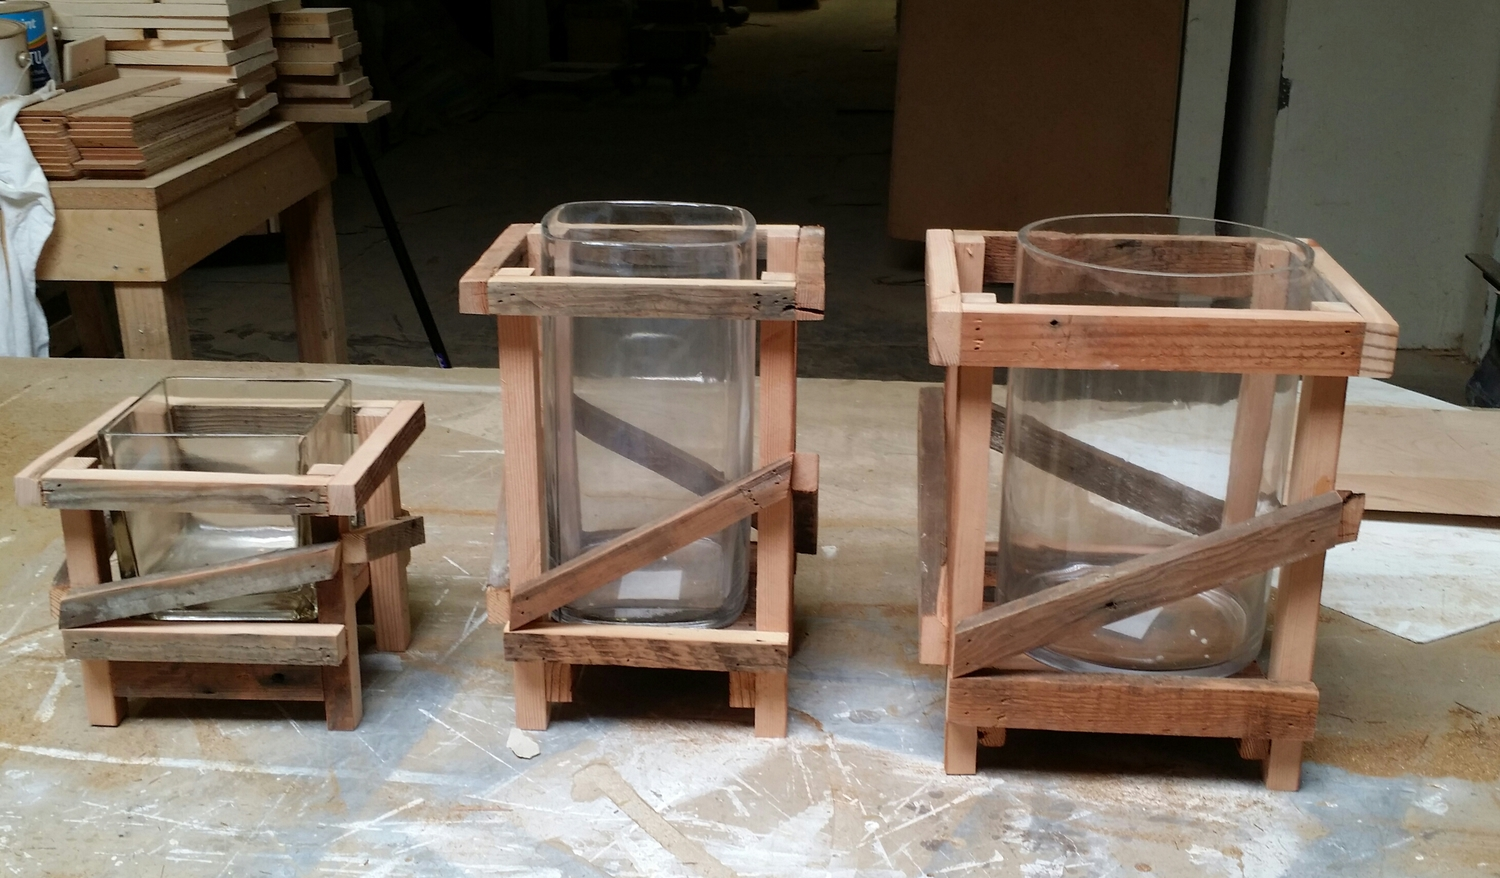 Samples of CC Design rustic wrap around containers for glass vessels, great for centerpieces in need of a rustic vibe.